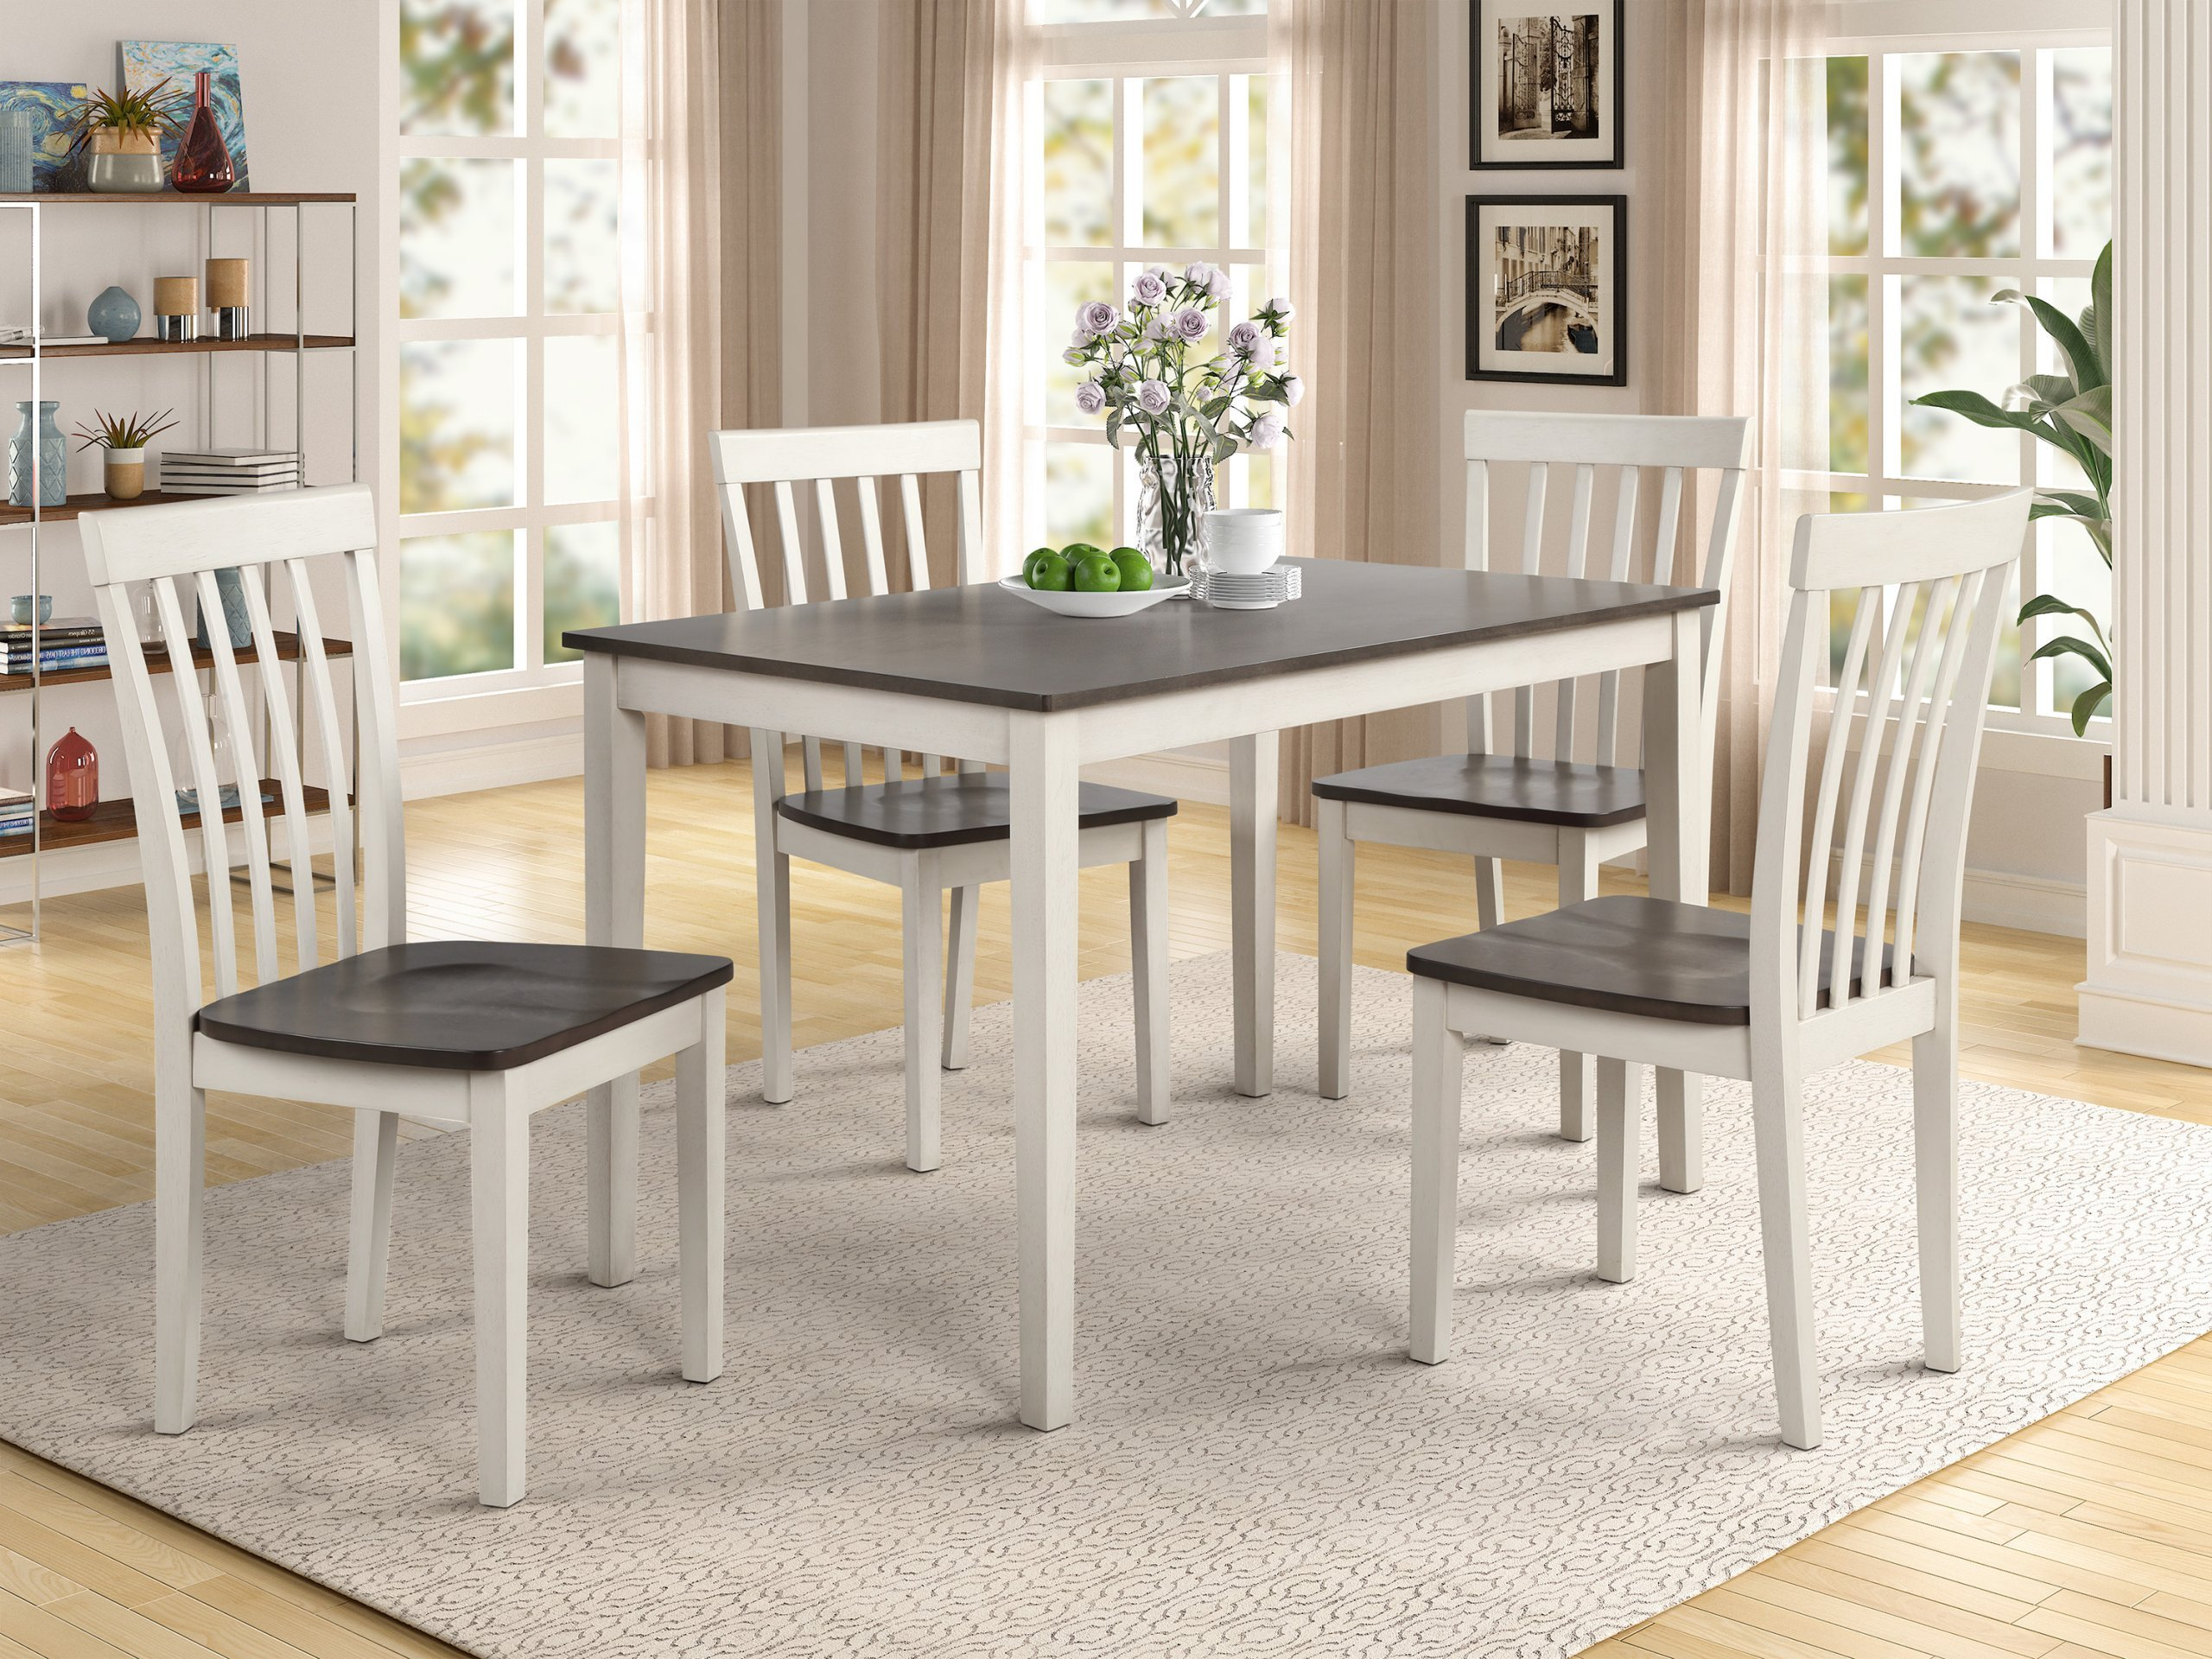 Wood Dinettes And Kitchen Sets